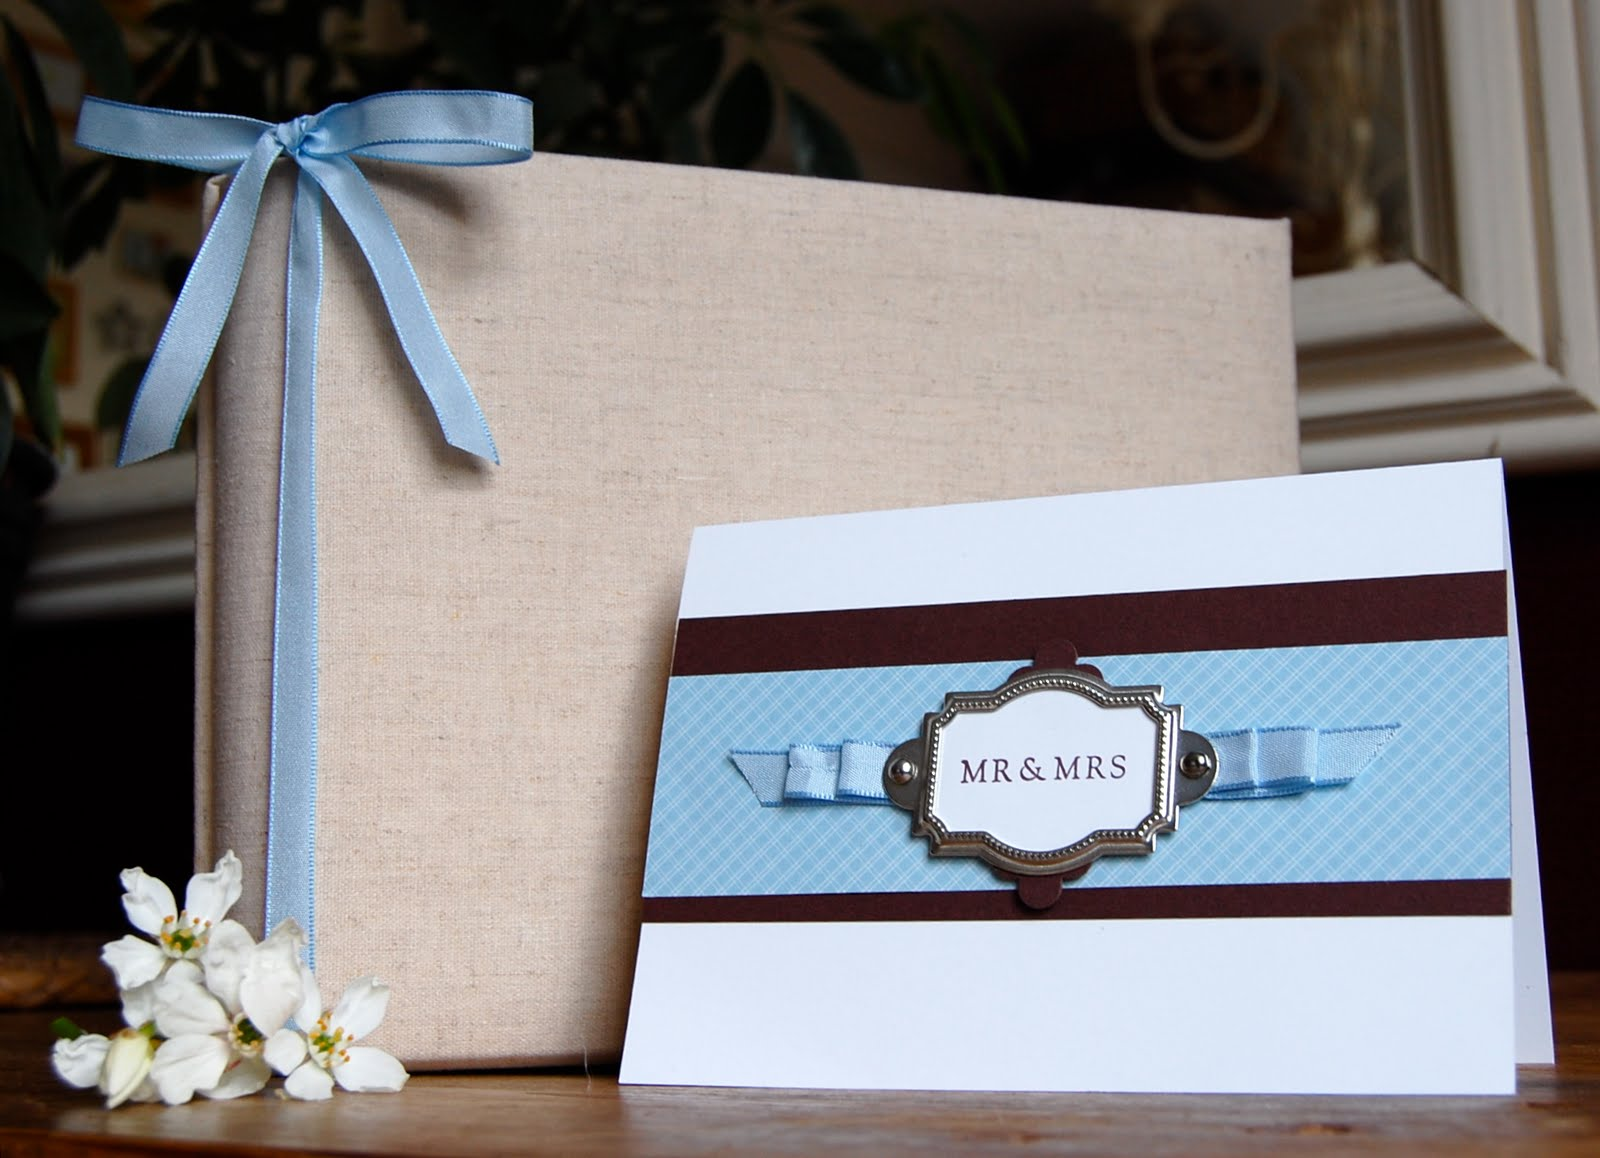 How to scrapbook wedding cards - This Beautiful Linen Bound Photograph Scrapbook Album Tied Up With Some Of The Bashful Blue Taffeta Ribbon Makes A Wonderful Gift And Presenting The Album